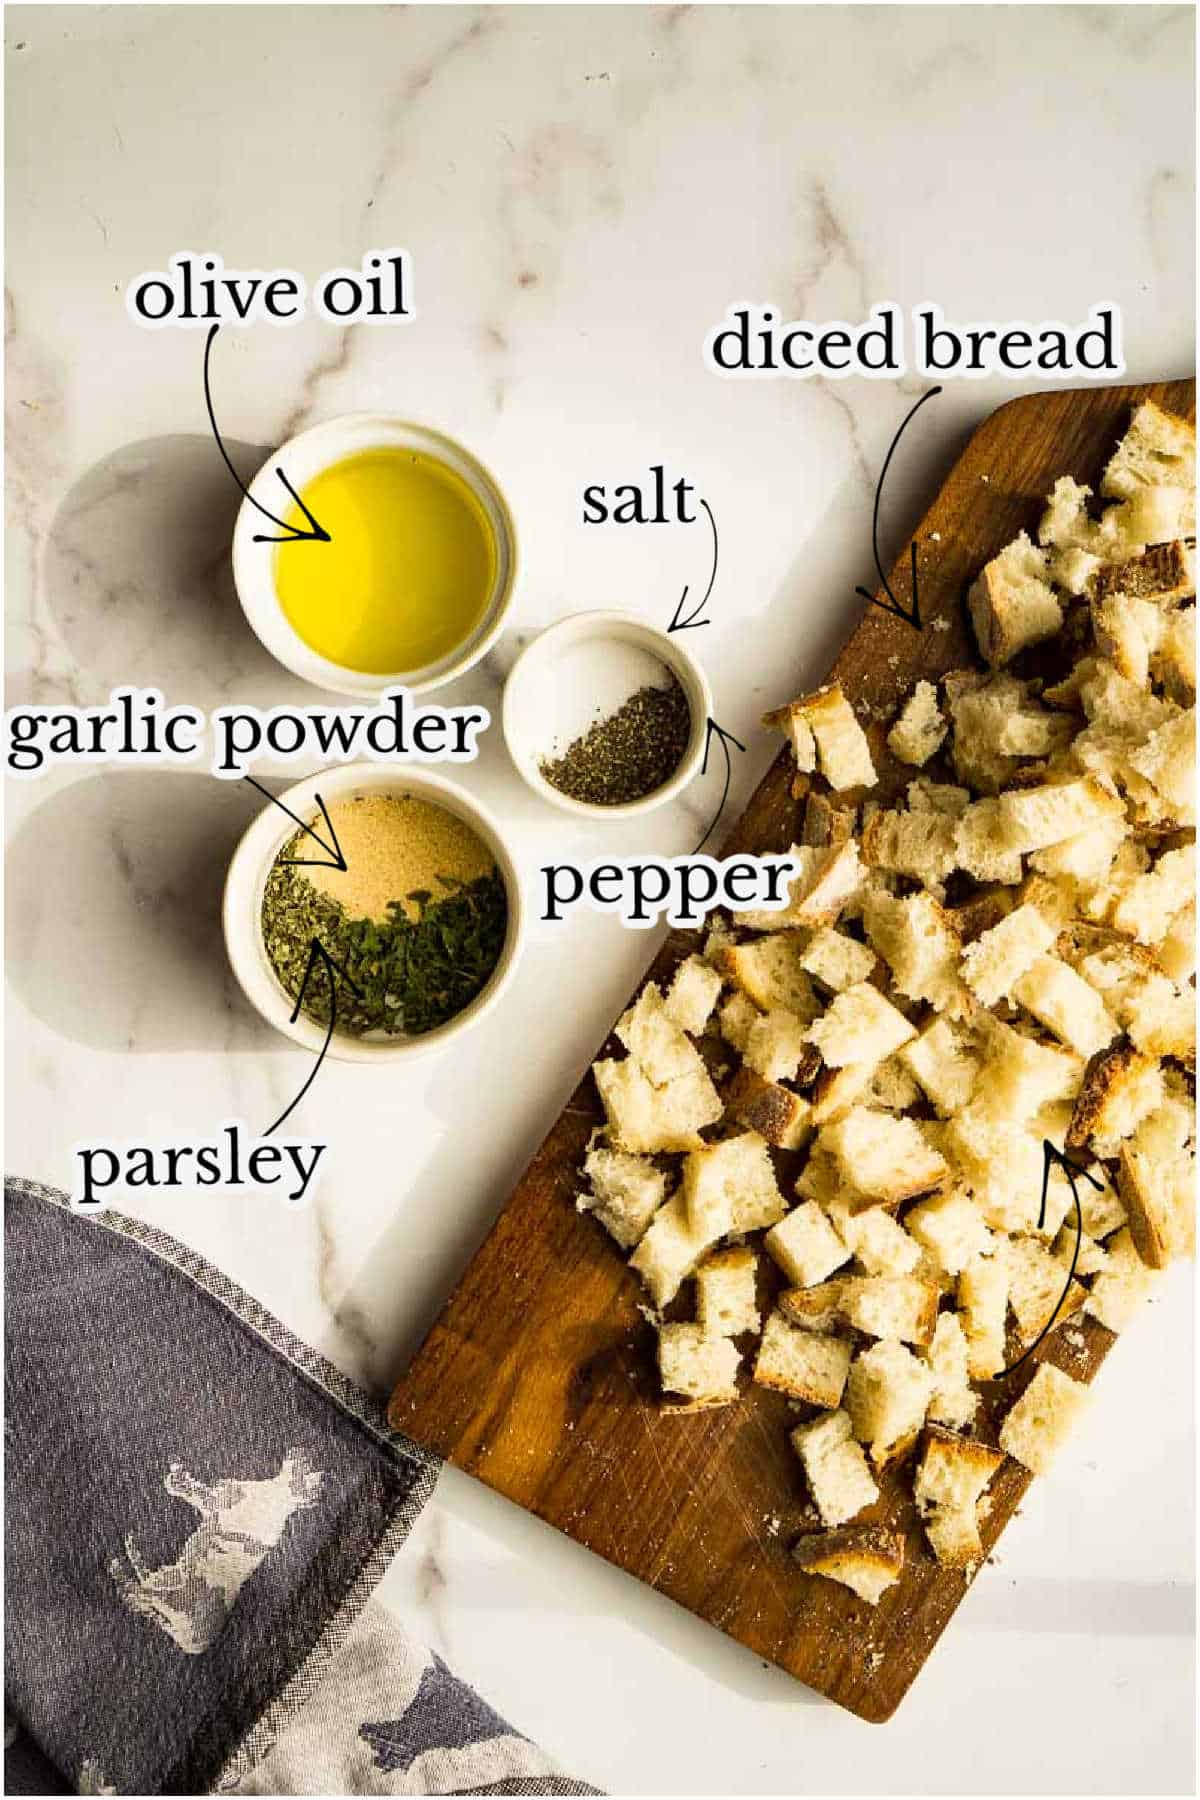 cubed bread, olive oil, salt, pepper, garlic powder, herbs on marble counter